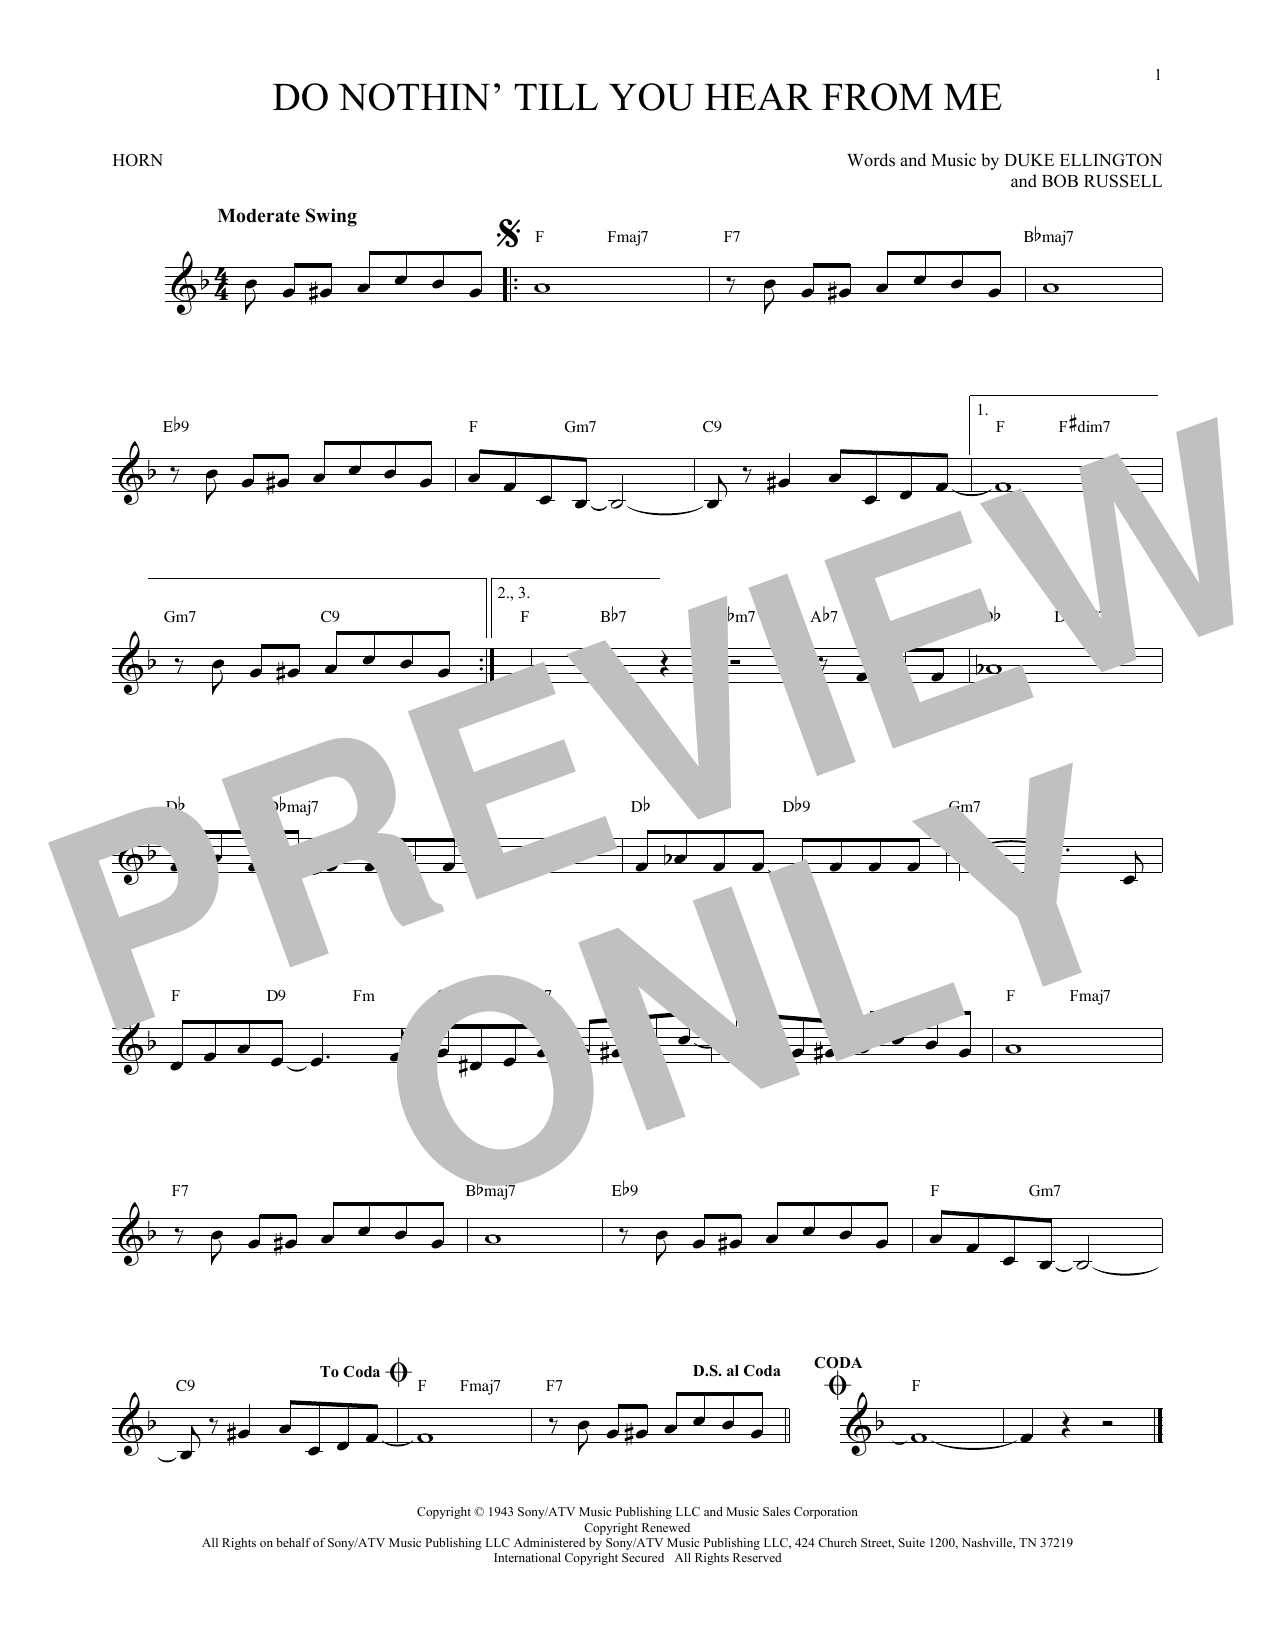 Do Nothin' Till You Hear From Me (French Horn Solo)